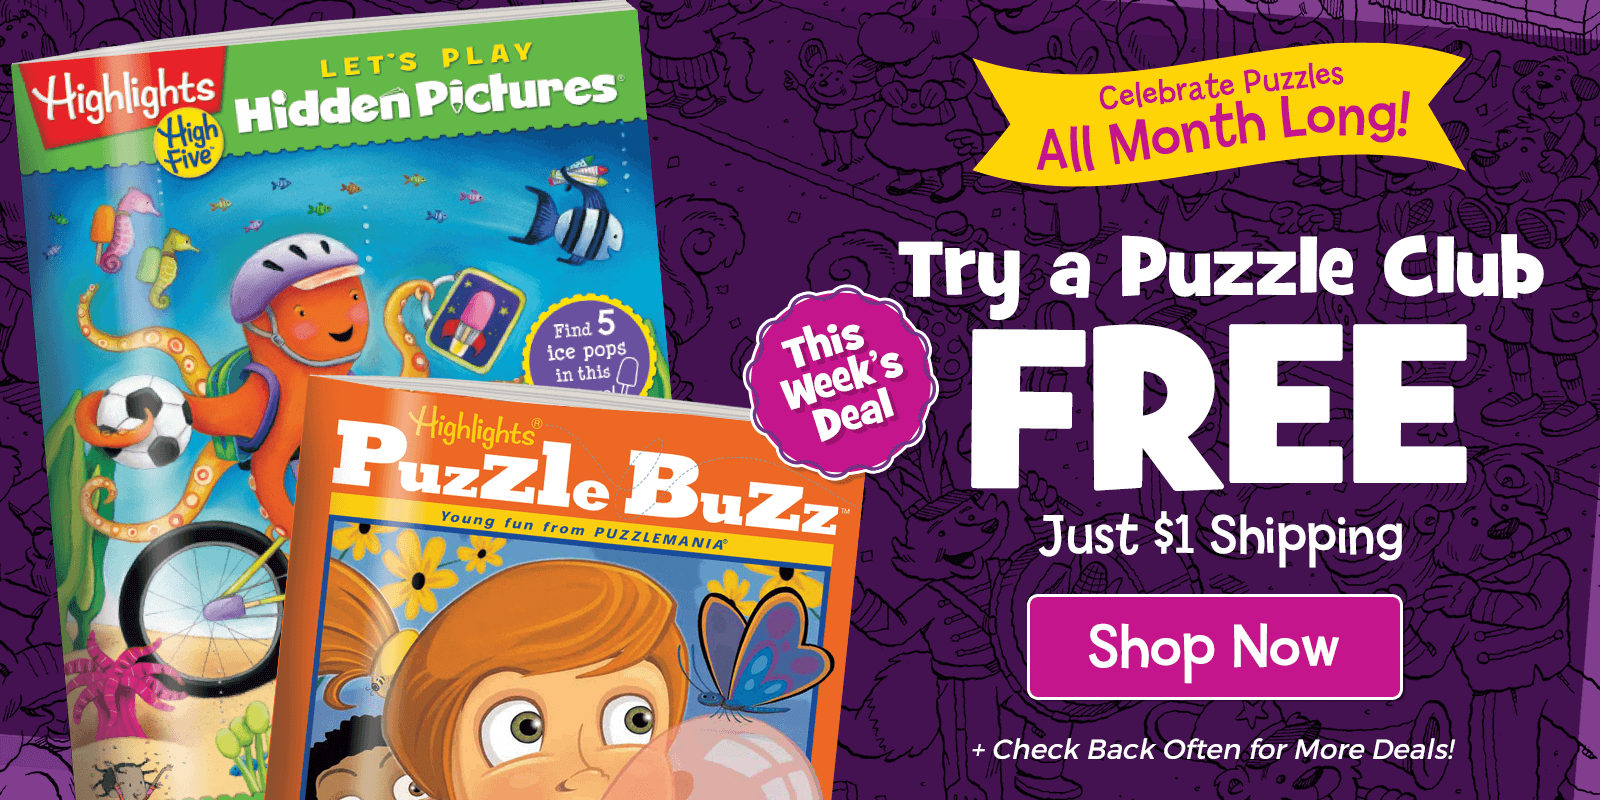 This Week Try Select Puzzle Clubs FREE and pay just $1 shipping for your first shipment